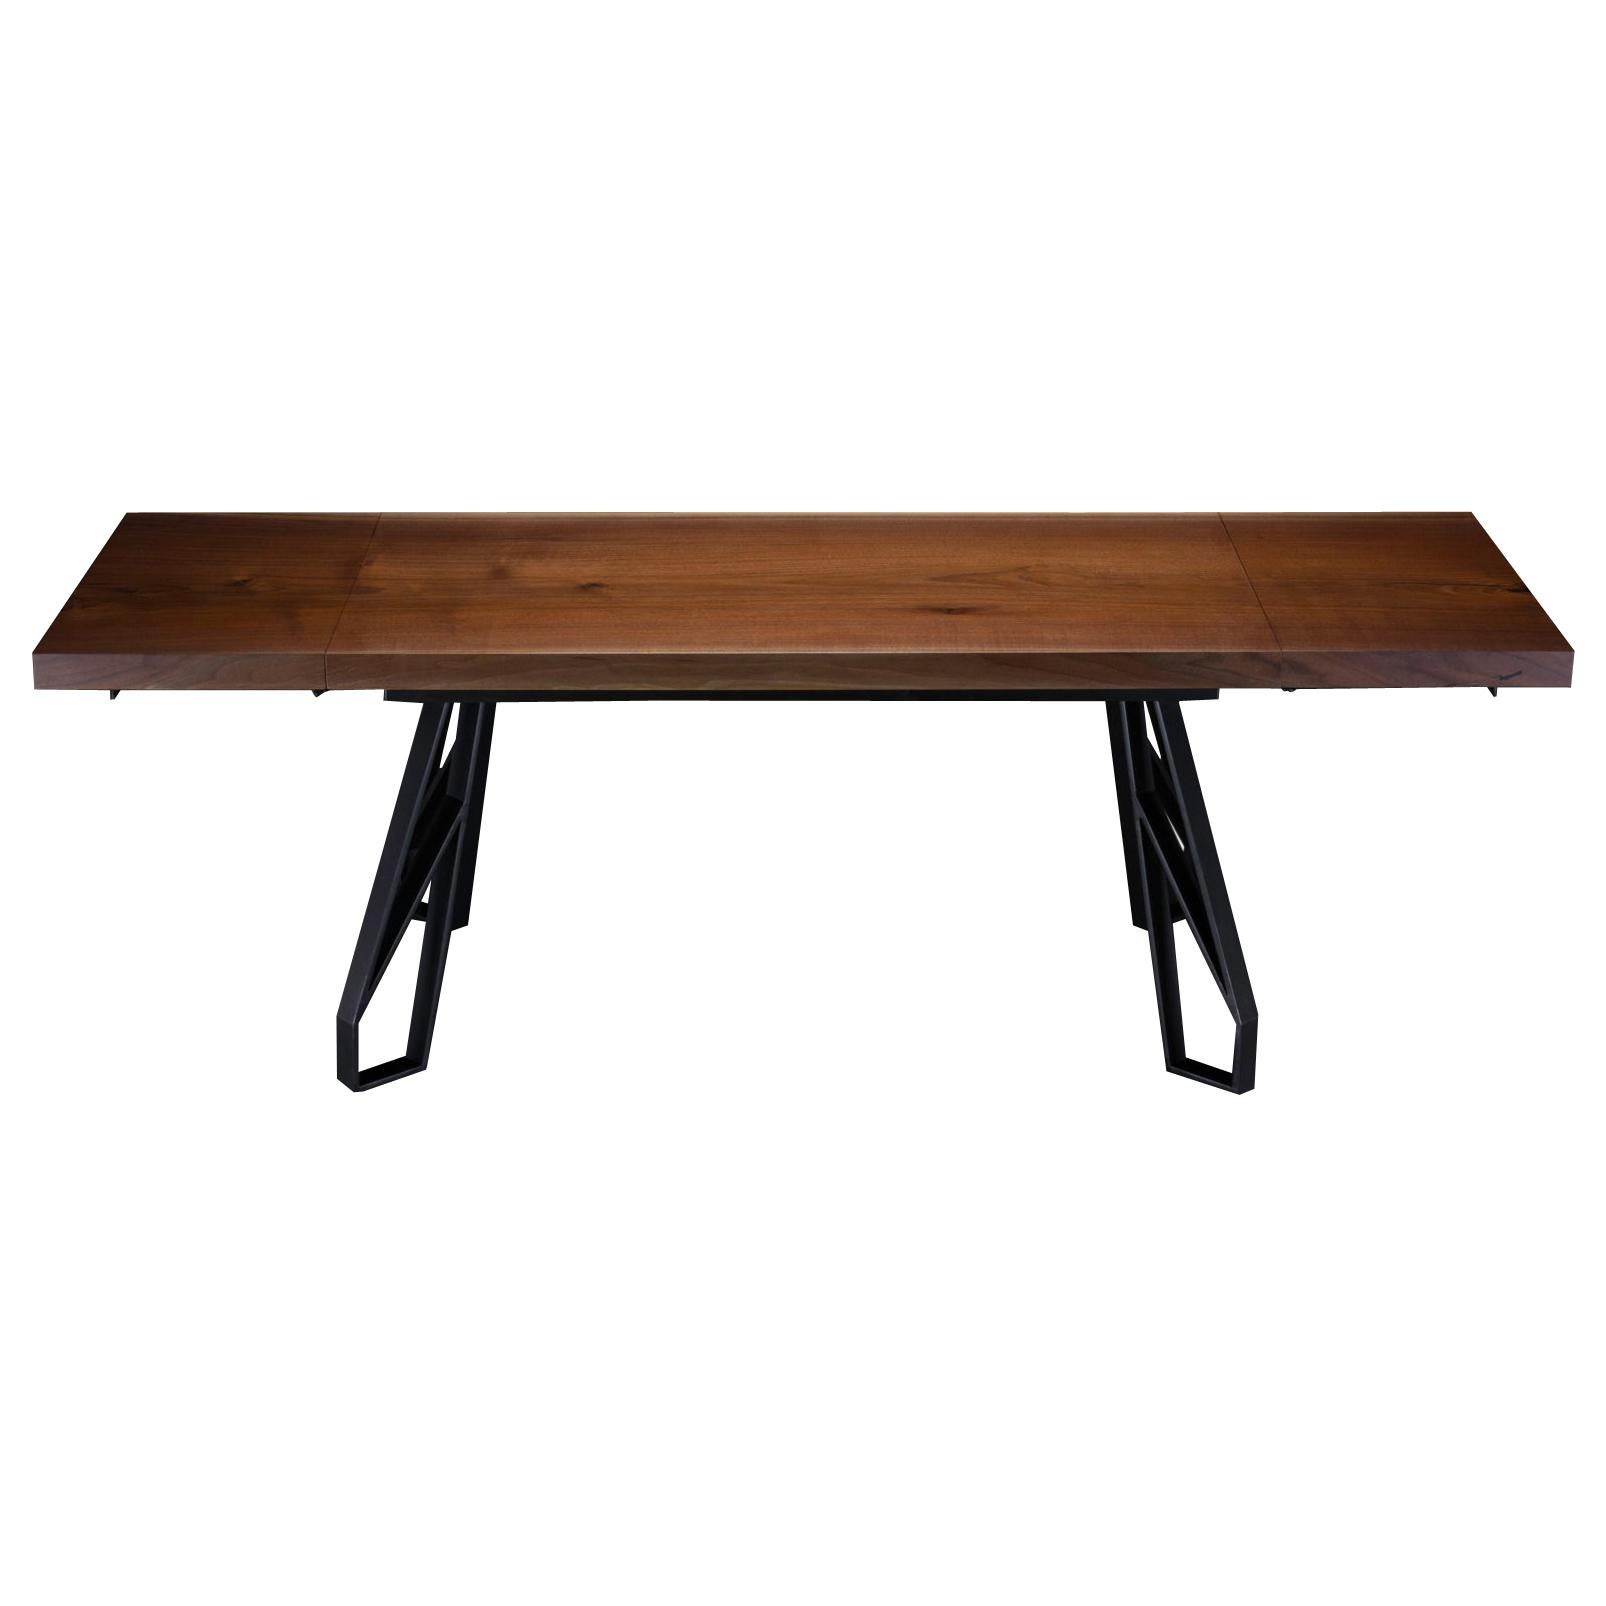 "Walnut Expanding Dining Table with Black Steel Legs ""Chalmers Dining Table"""